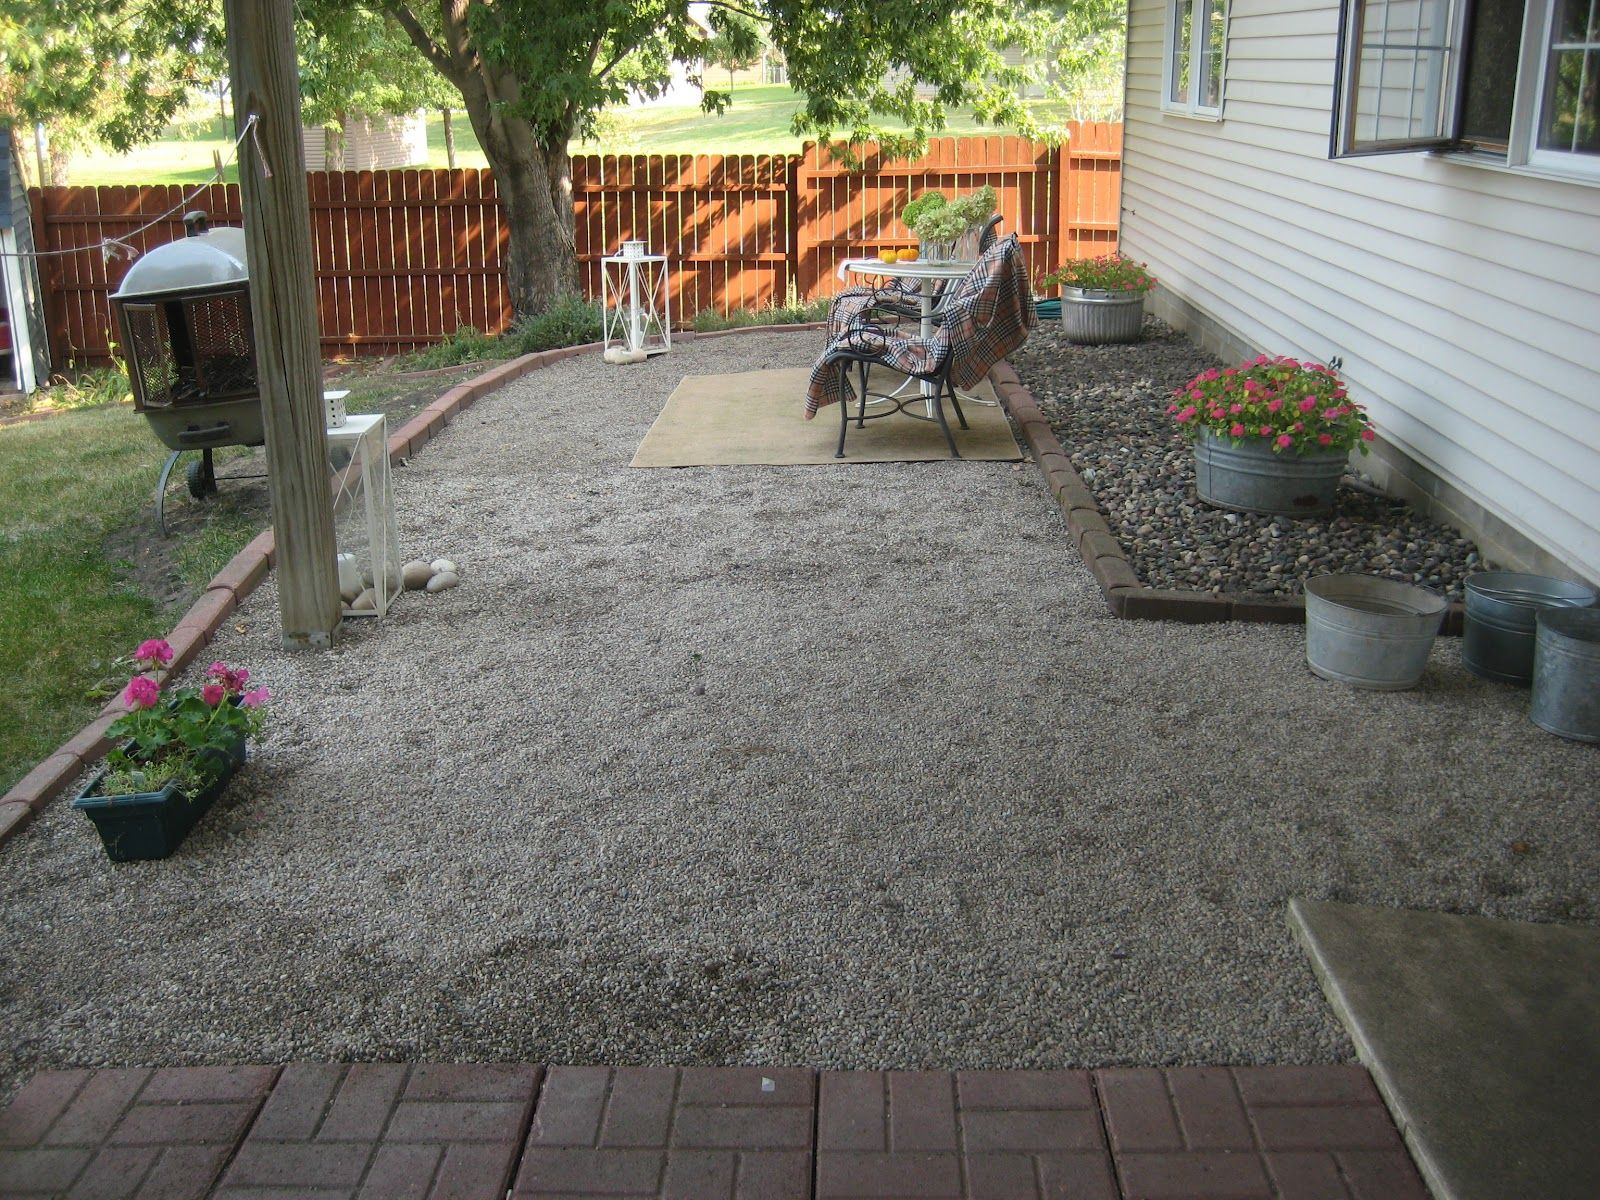 Patio: Garden Behind The House With A Floor Of Gravel Road ... on Pebble Patio Ideas id=35424